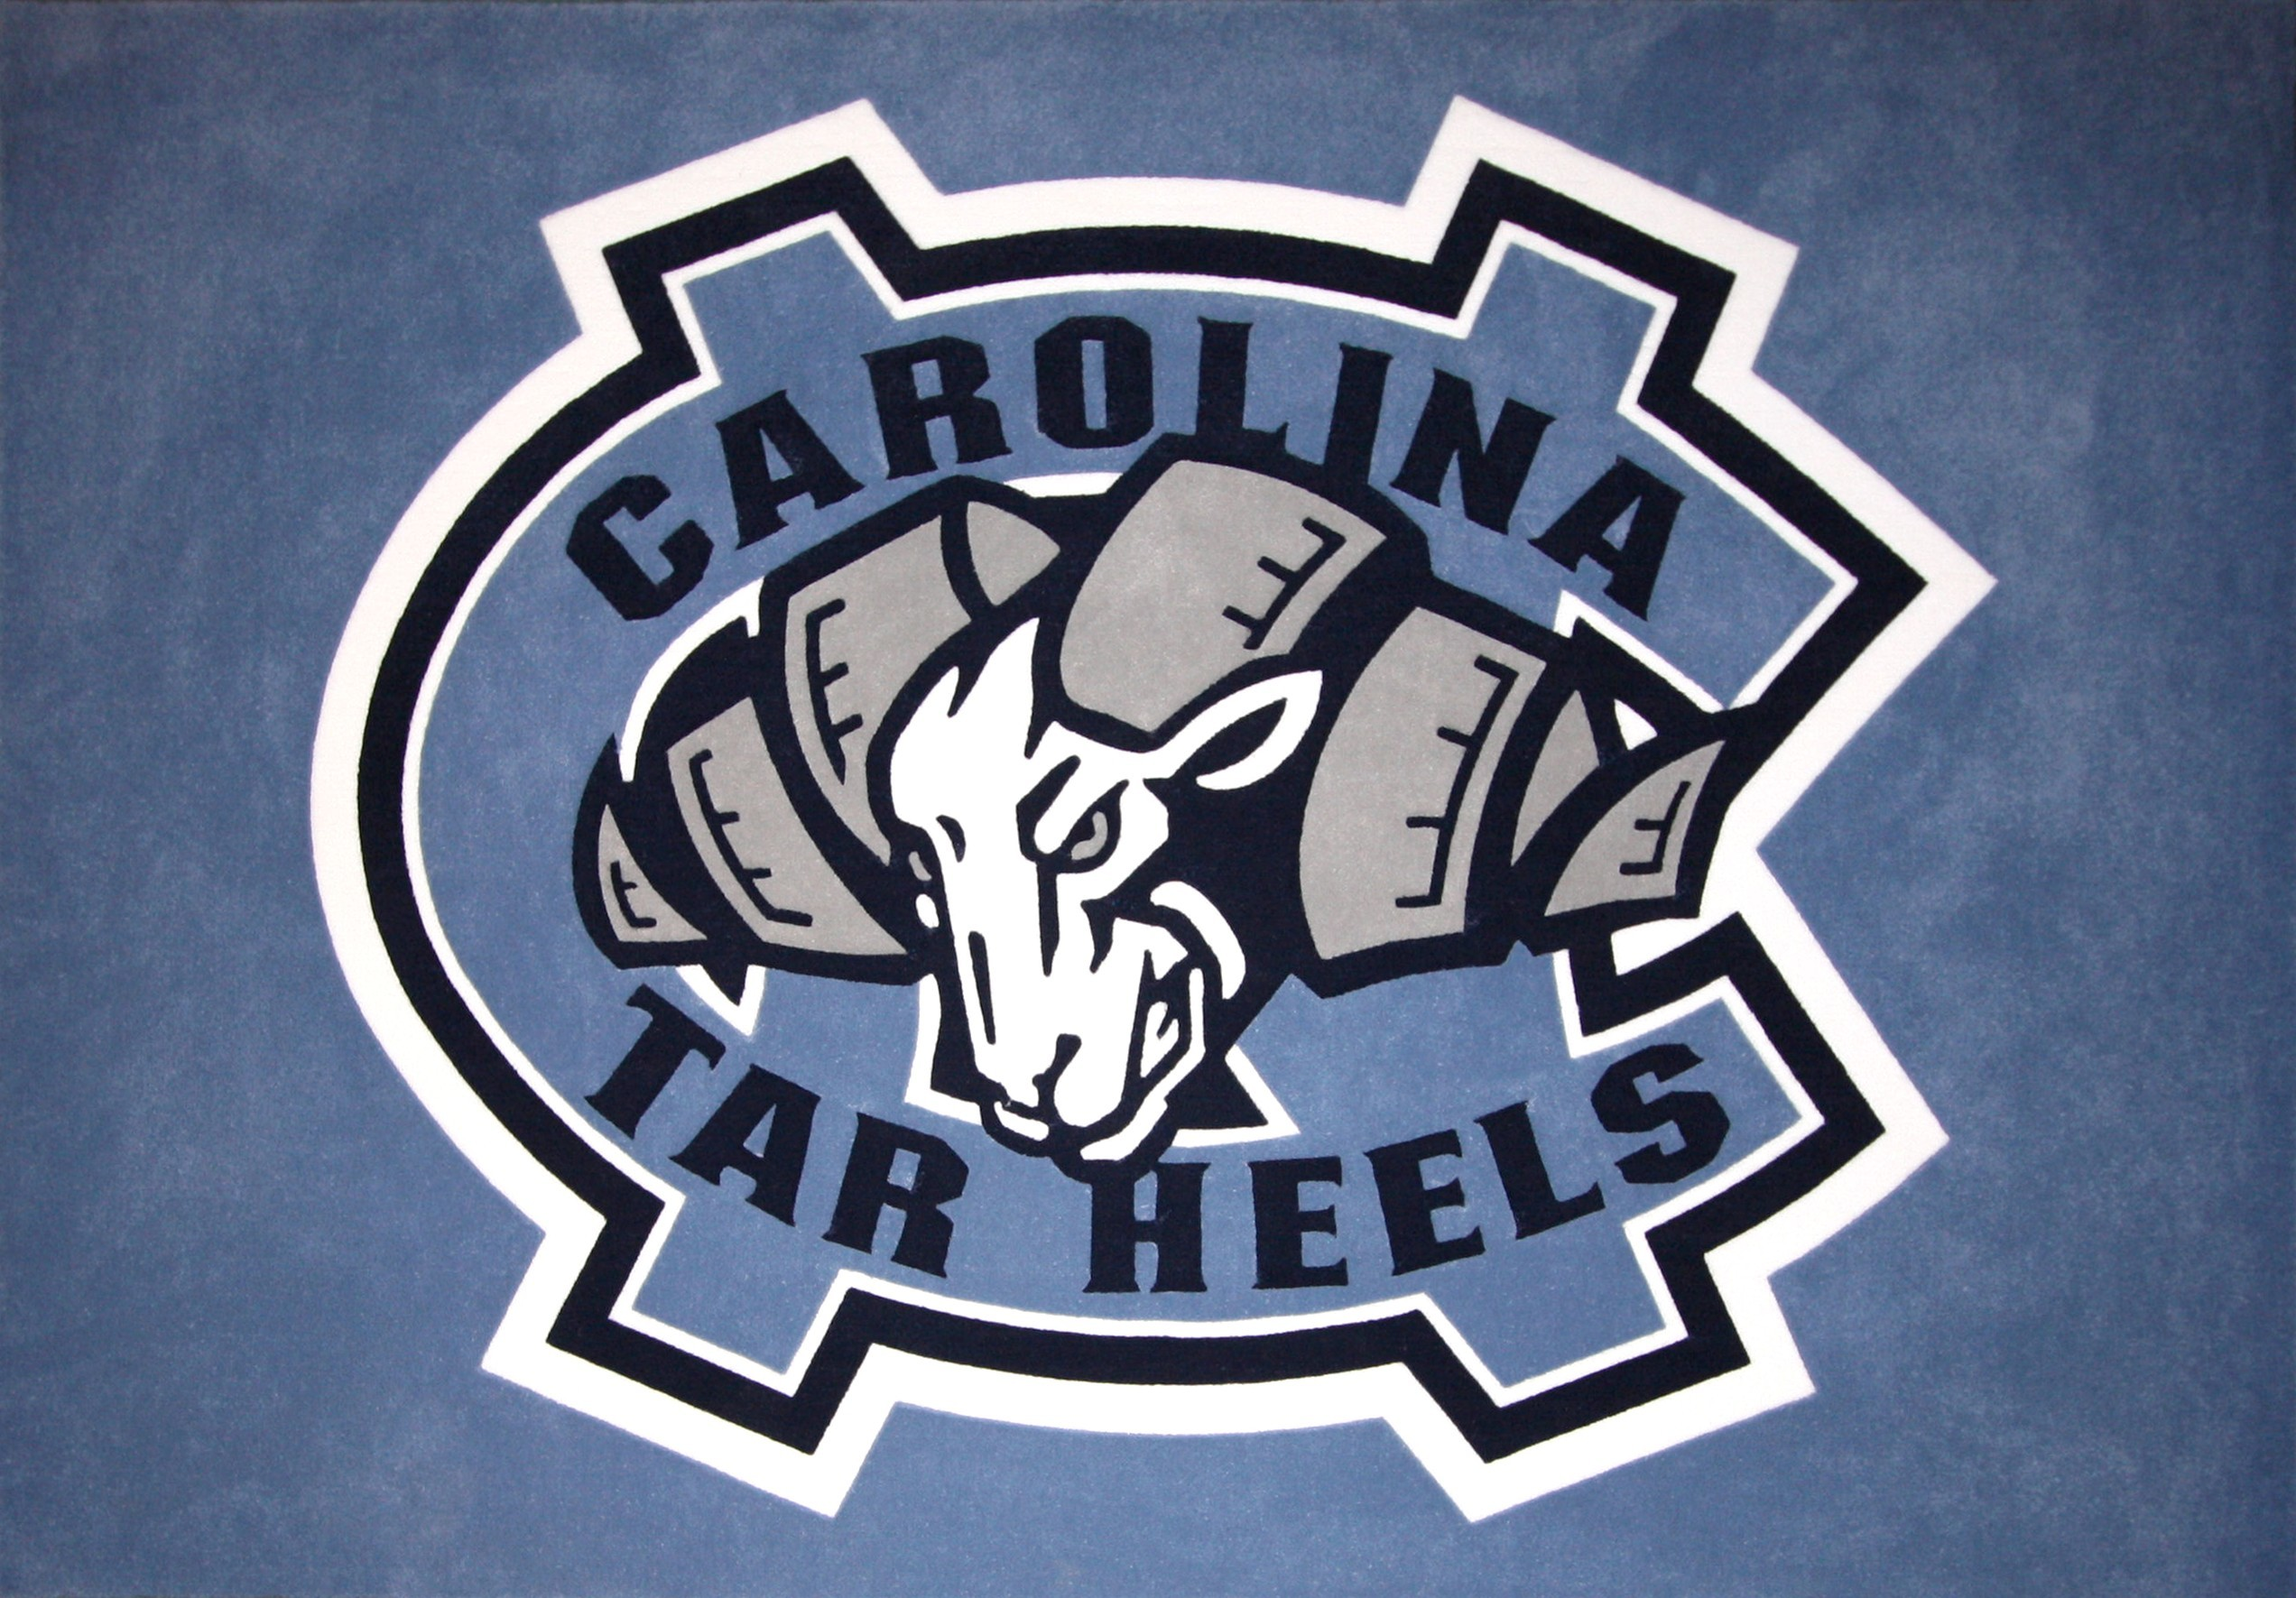 2544x1771 North Carolina Tar Heel Wallpaper 2544×1771